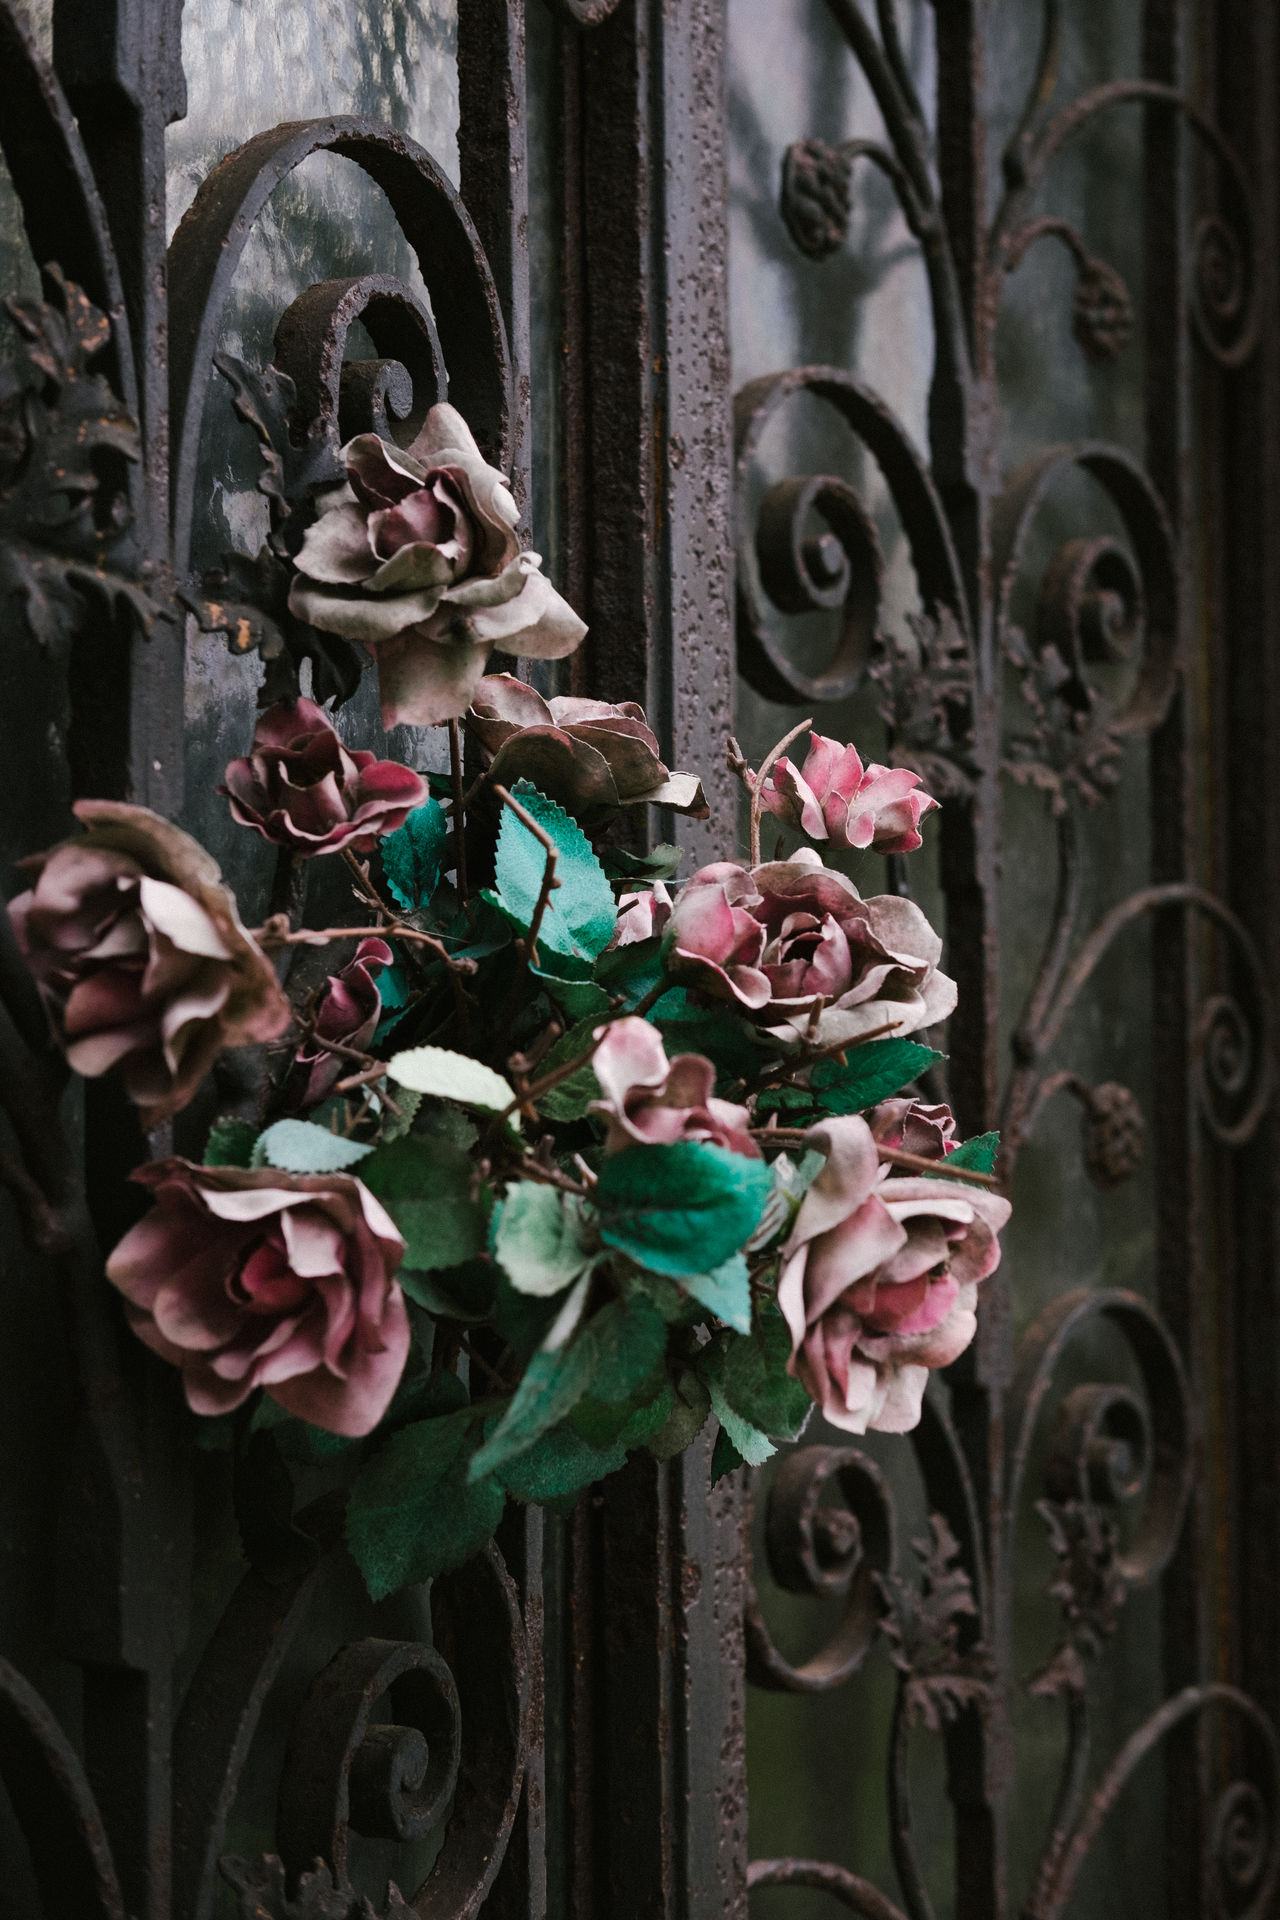 Cemetery City Close-up Day Dead Flowers Dried Flowers Faded Colors Flower France Mausoleum No People Outdoors Paris Père Lachaise Tomb Wrought Iron Wrought Iron Design